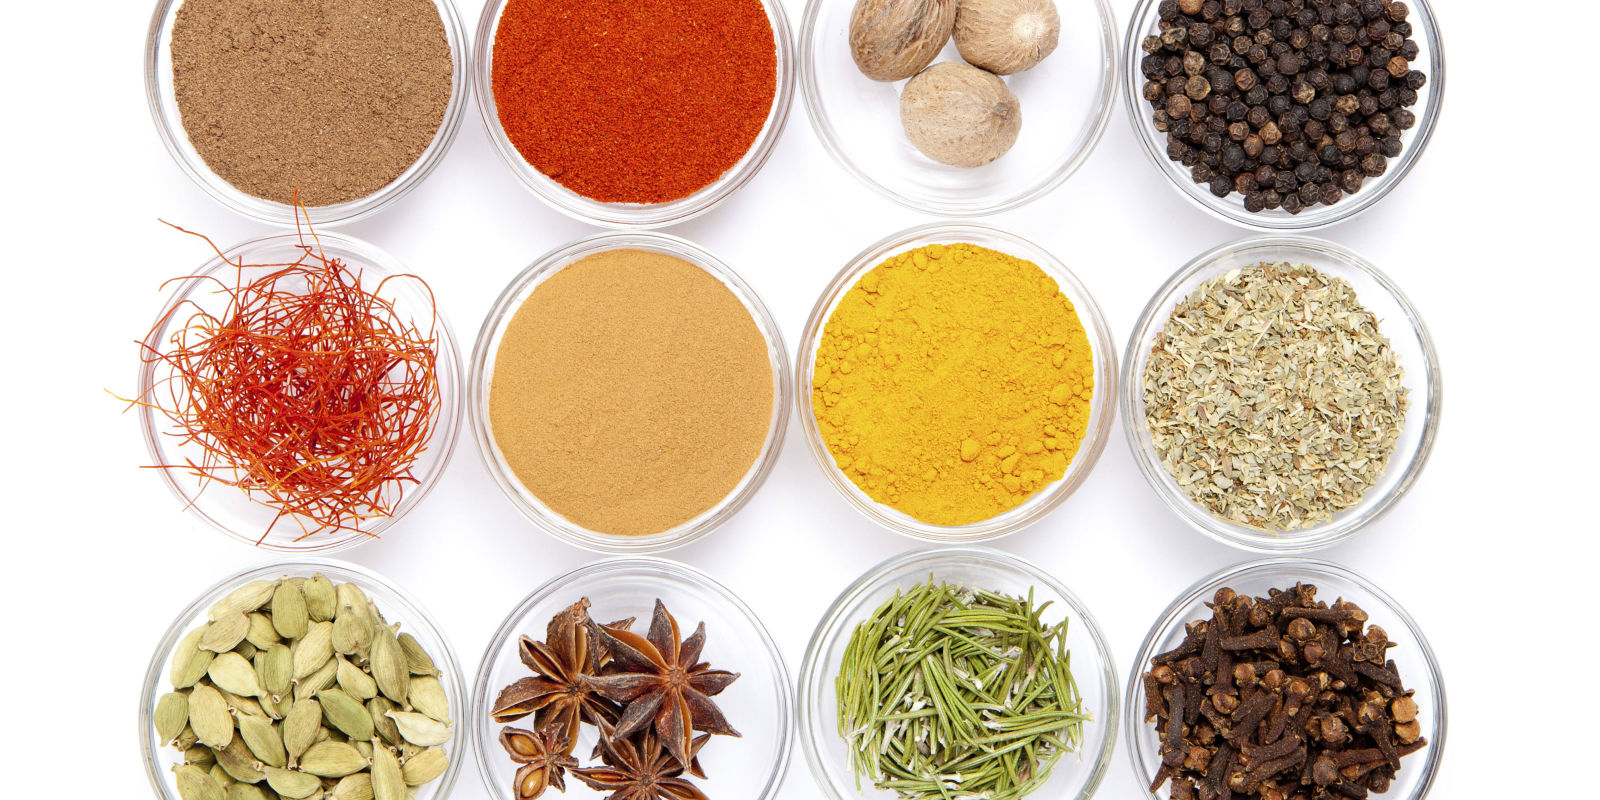 8 Herbs and Spices You Should Be Adding to Your Smoothies